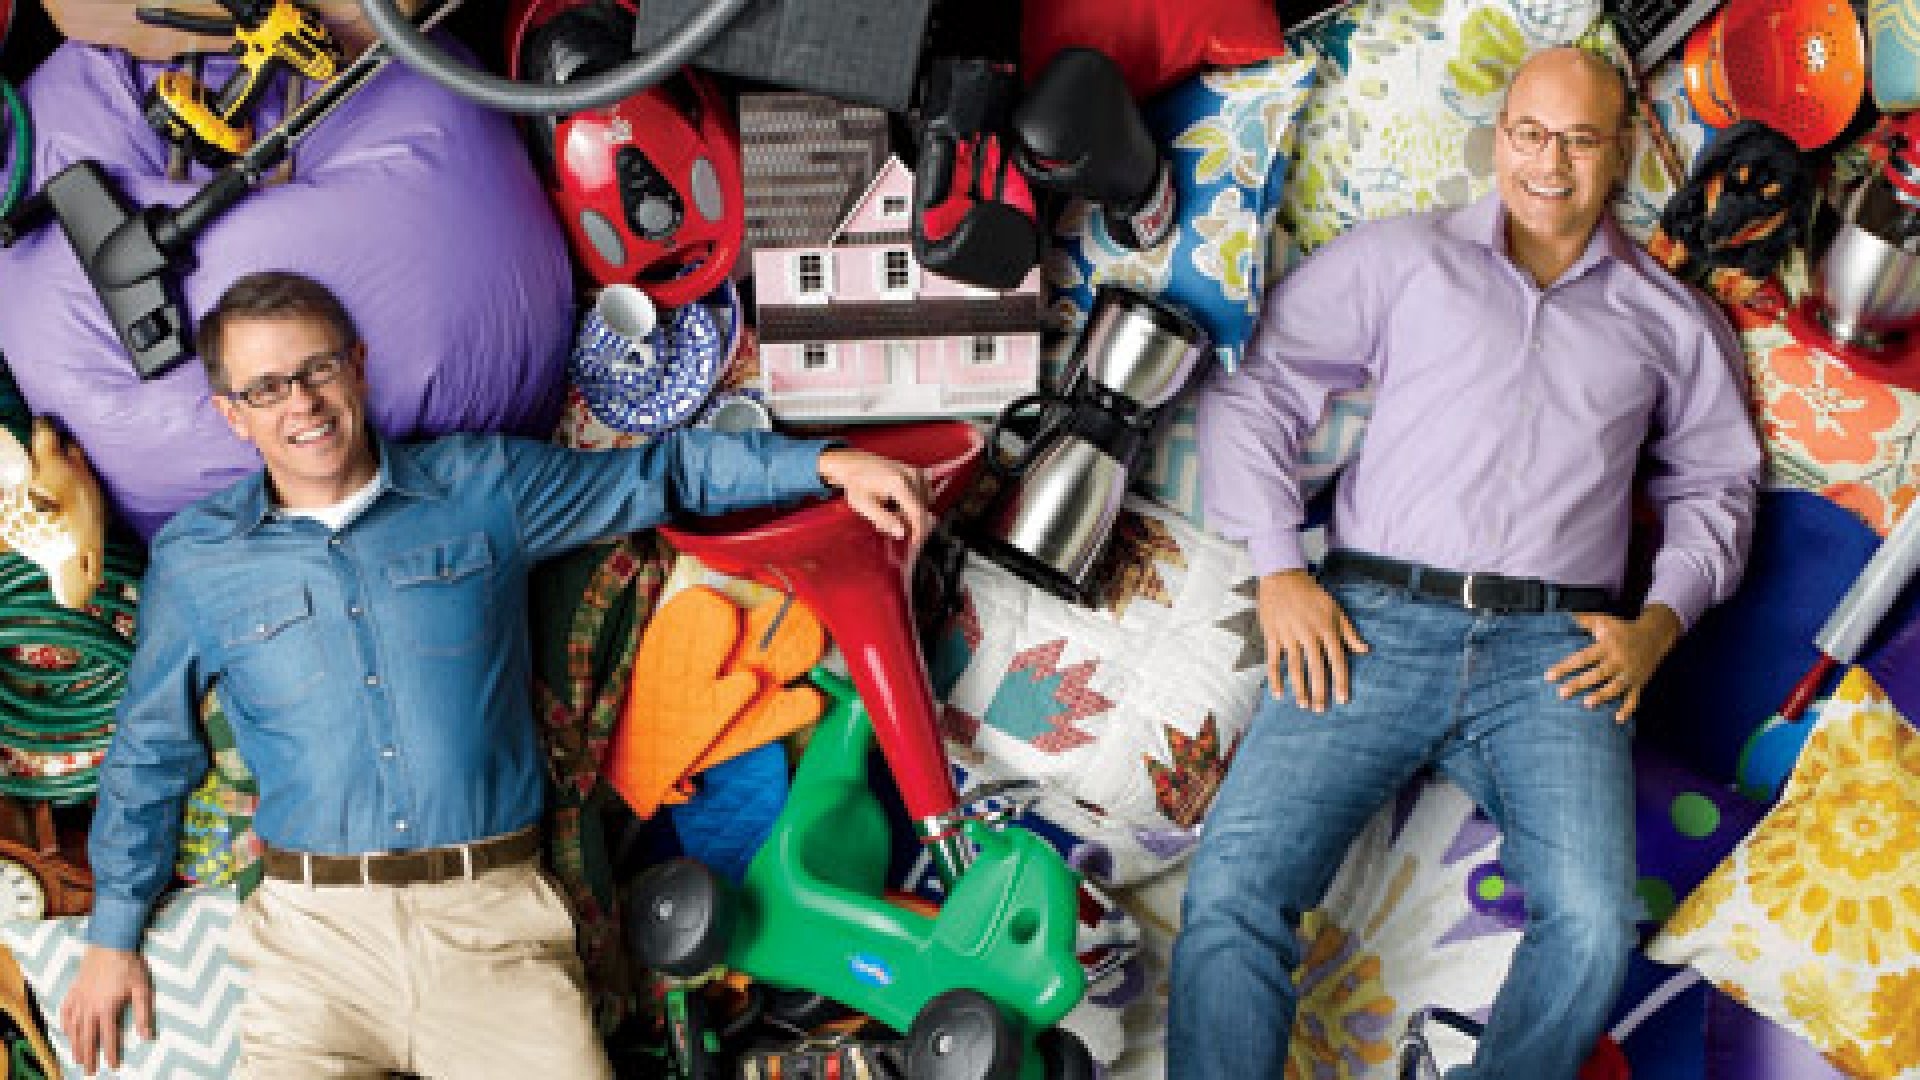 <b>You Want It? We Got It:</b> Wayfair founded by Steve Conine (left)and Niraj Shah, sells more than 4.5 million items. These are a few of them.